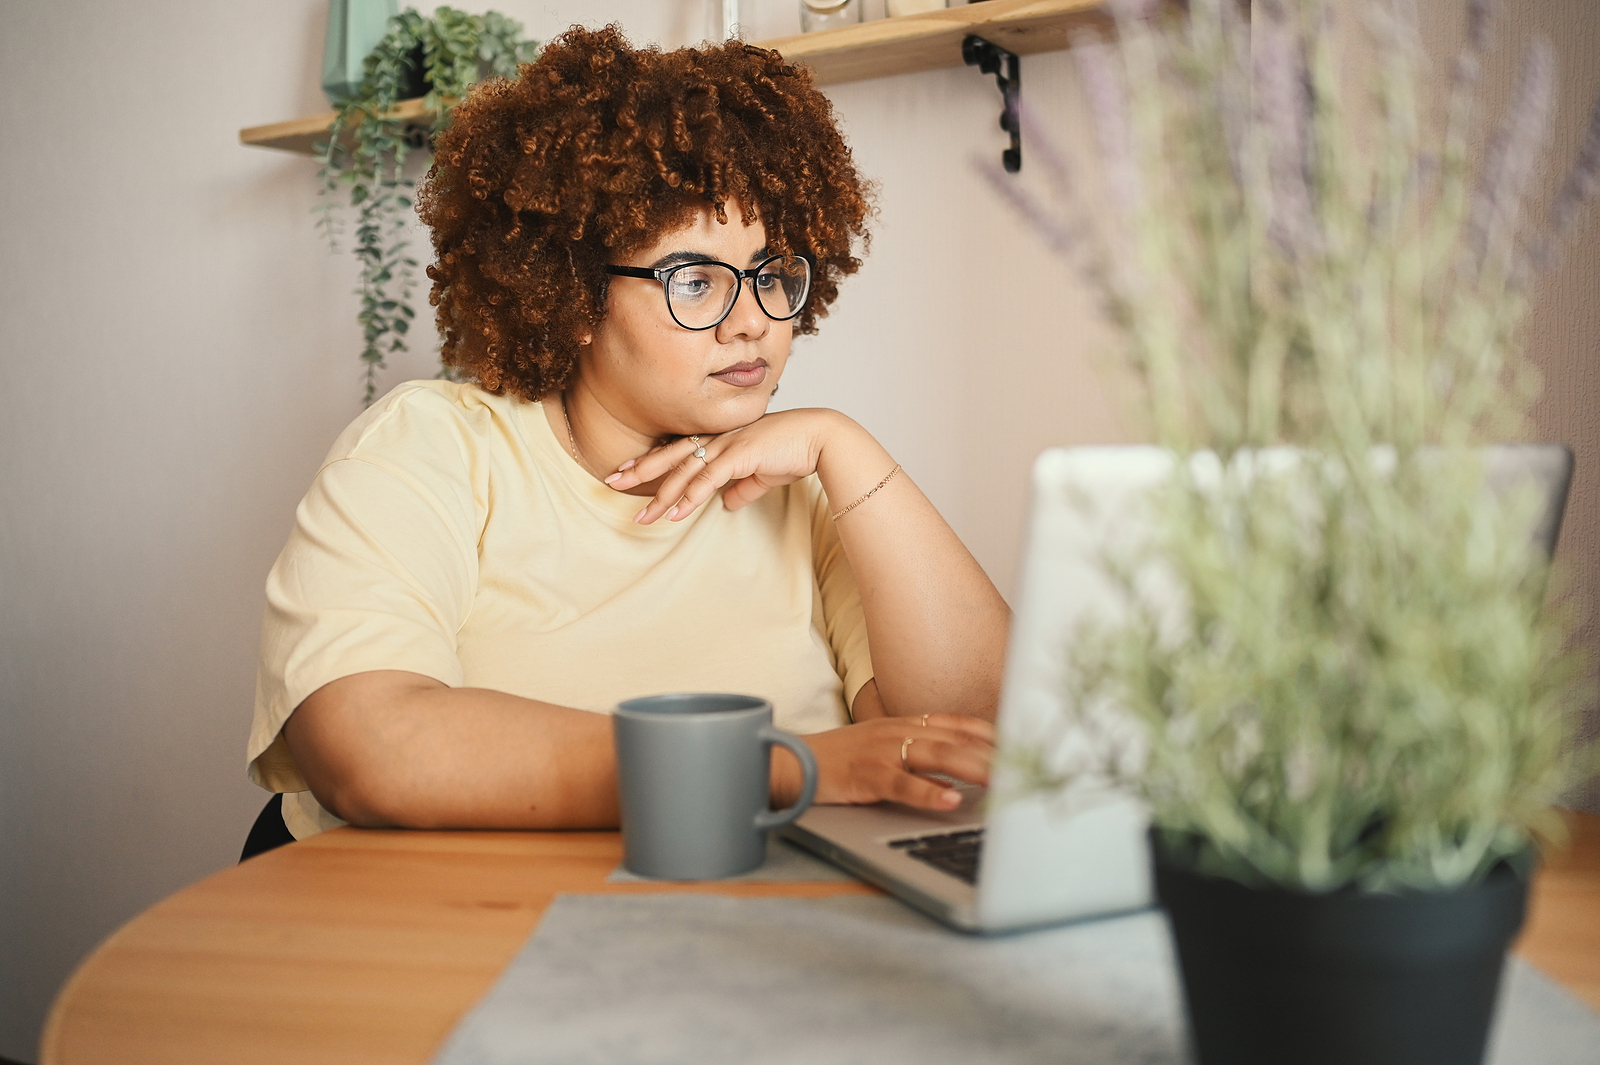 Black woman on laptop, plants in foreground and background. If you're wondering with online therapy in Michigan or therapy in Detroit, MI is for you then get in touch. You will work with one of our talented black woman therapists near you or online. Call now!